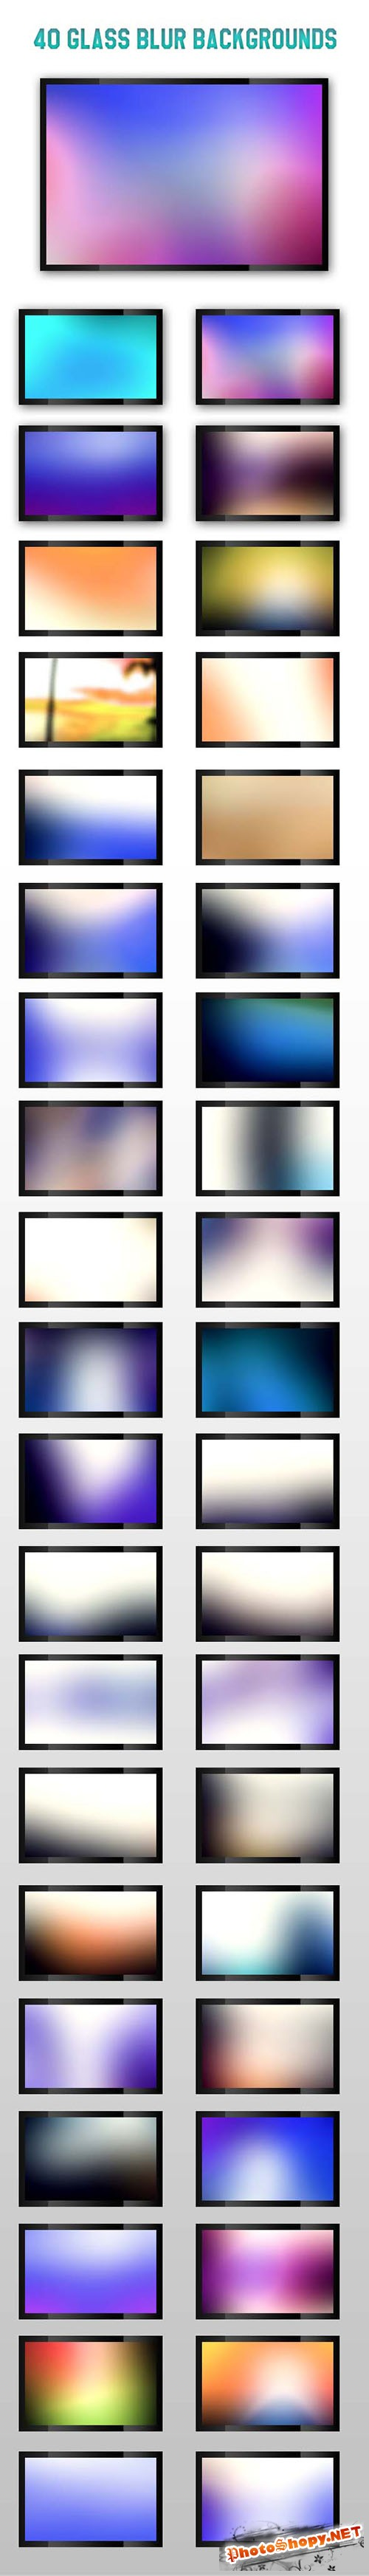 40 Glass Blur Backgrounds